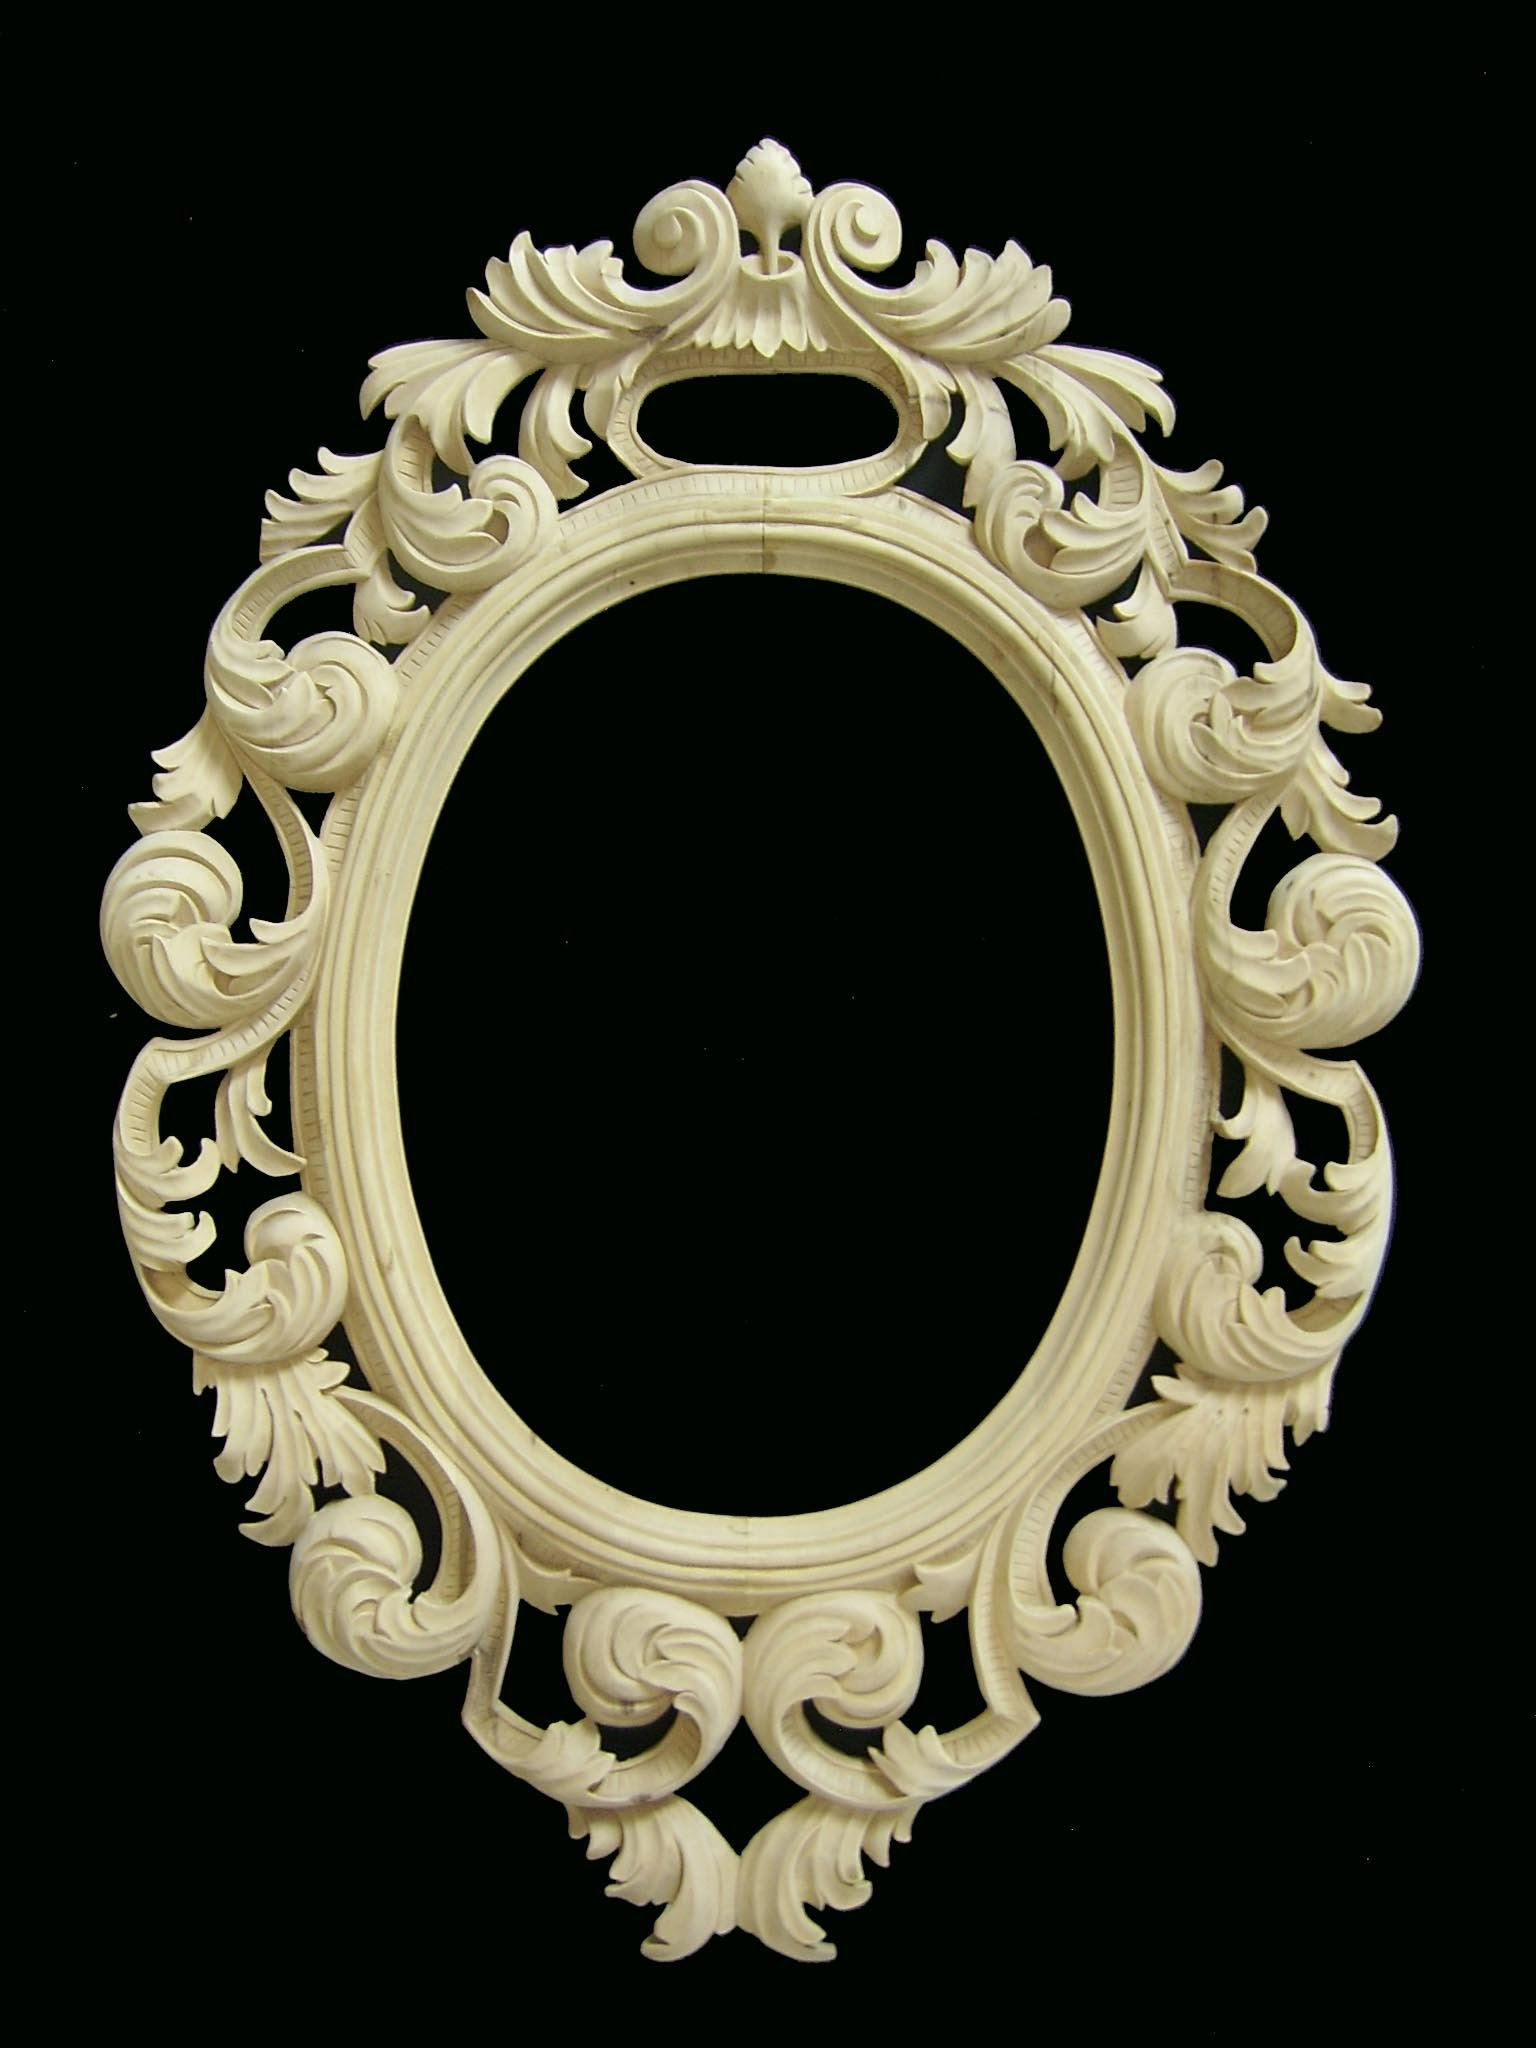 Wooden Mirror Frame Circus Pinterest Within Baroque Mirror Frame (Image 15 of 15)